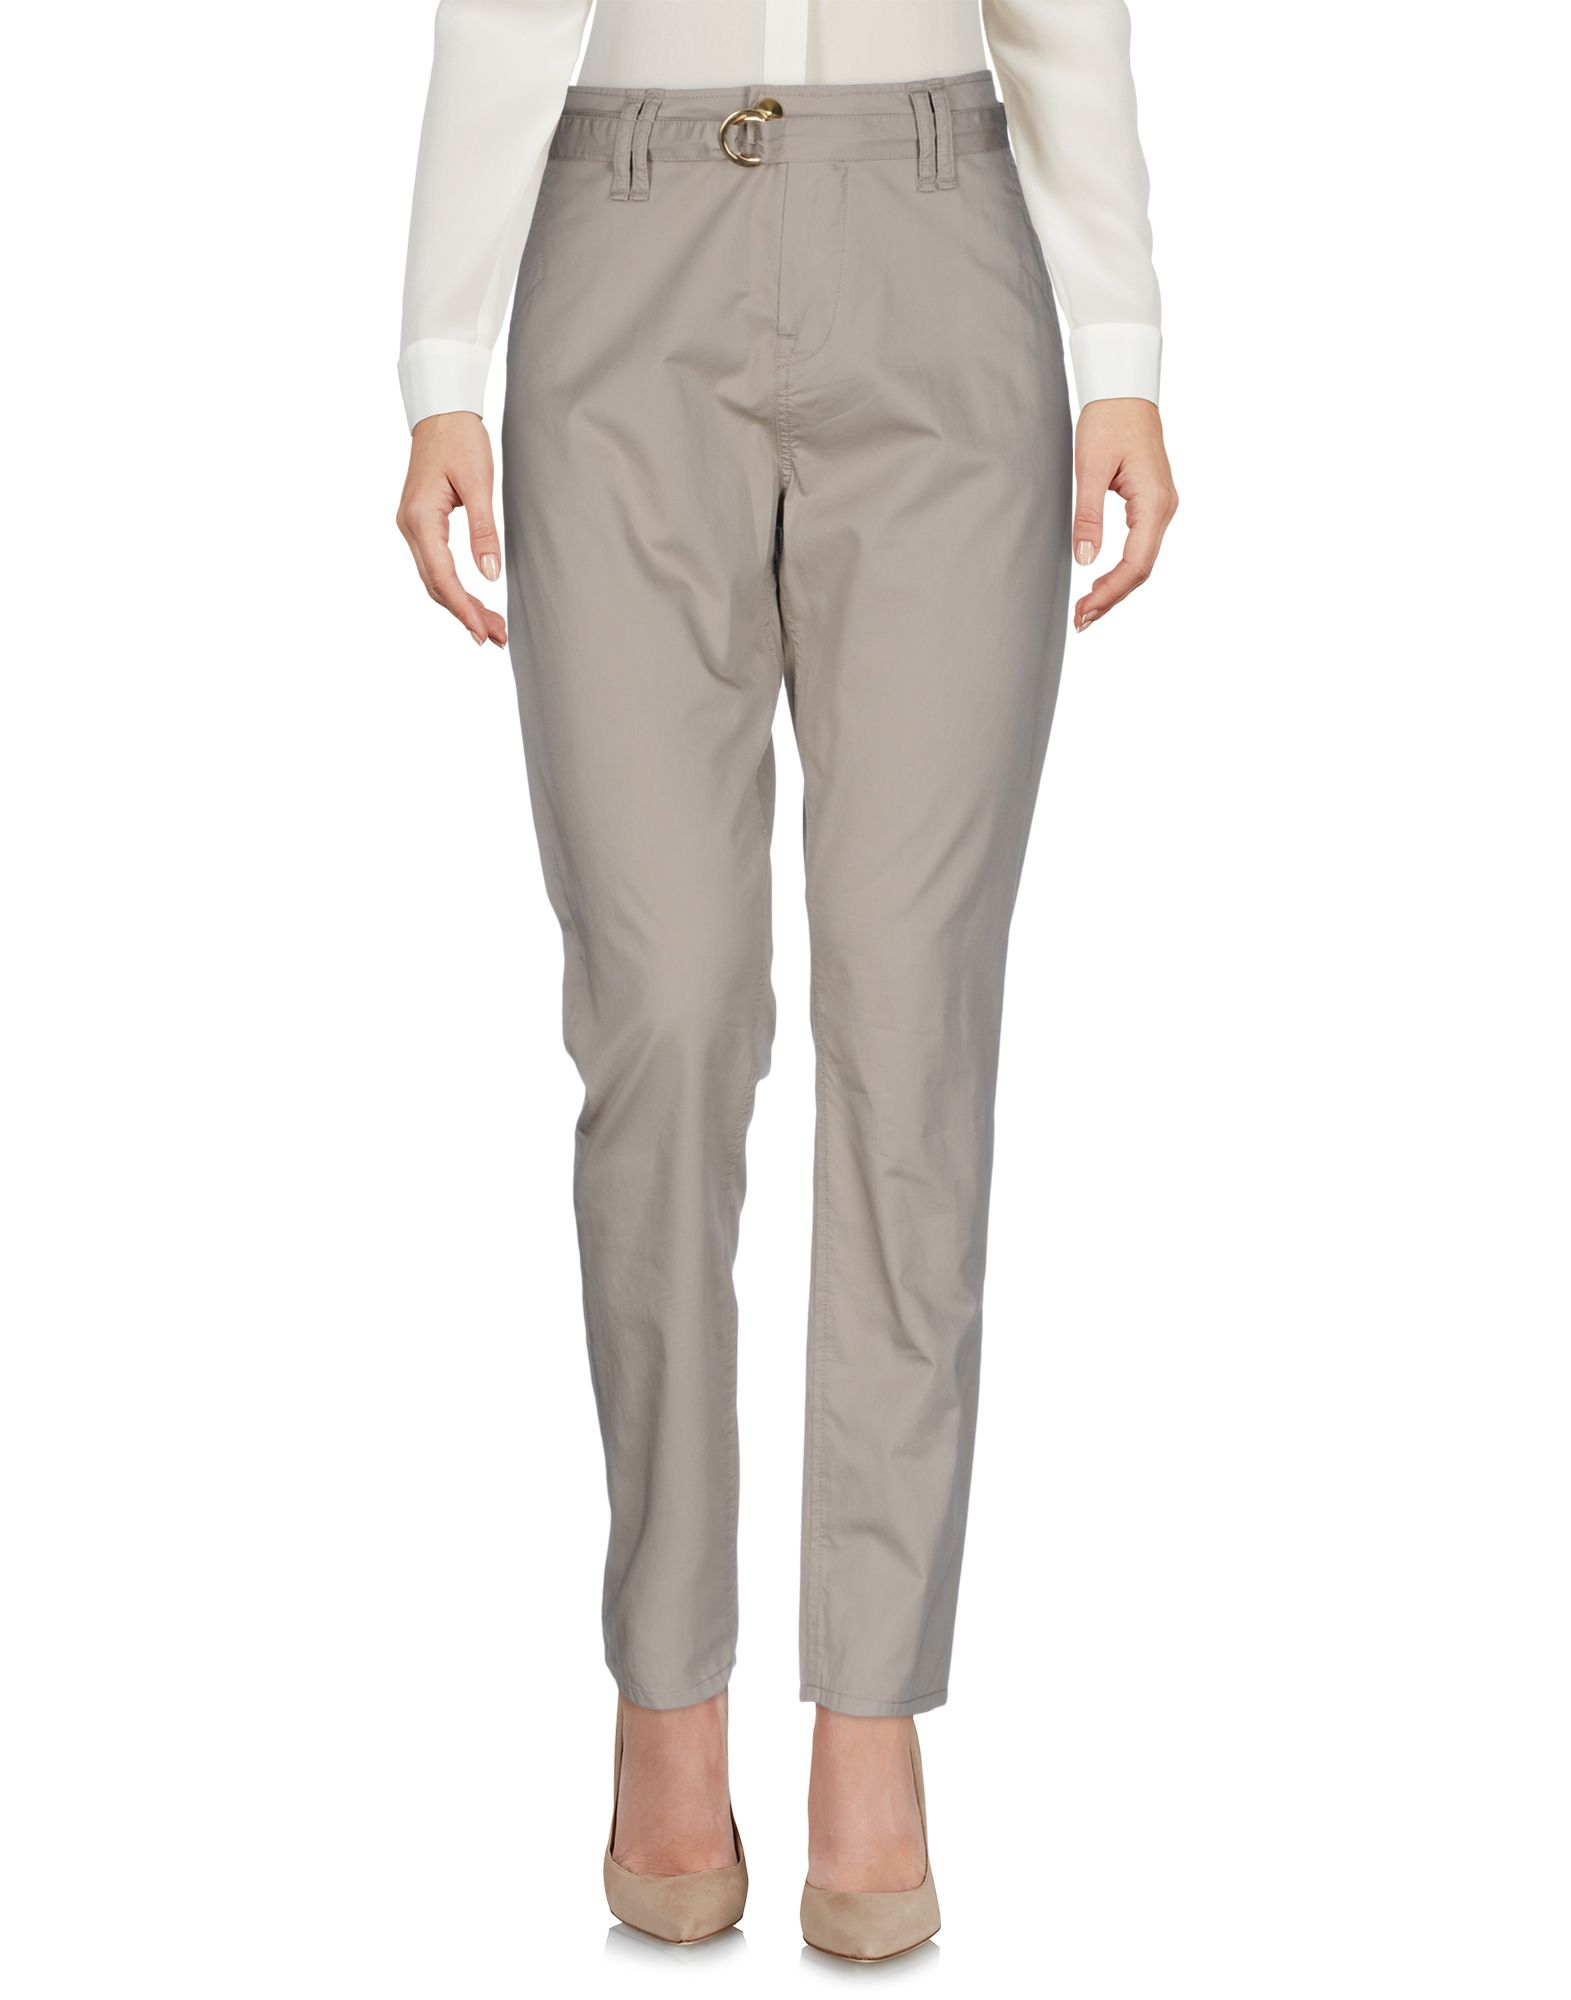 CYCLE Casual Pants in Beige